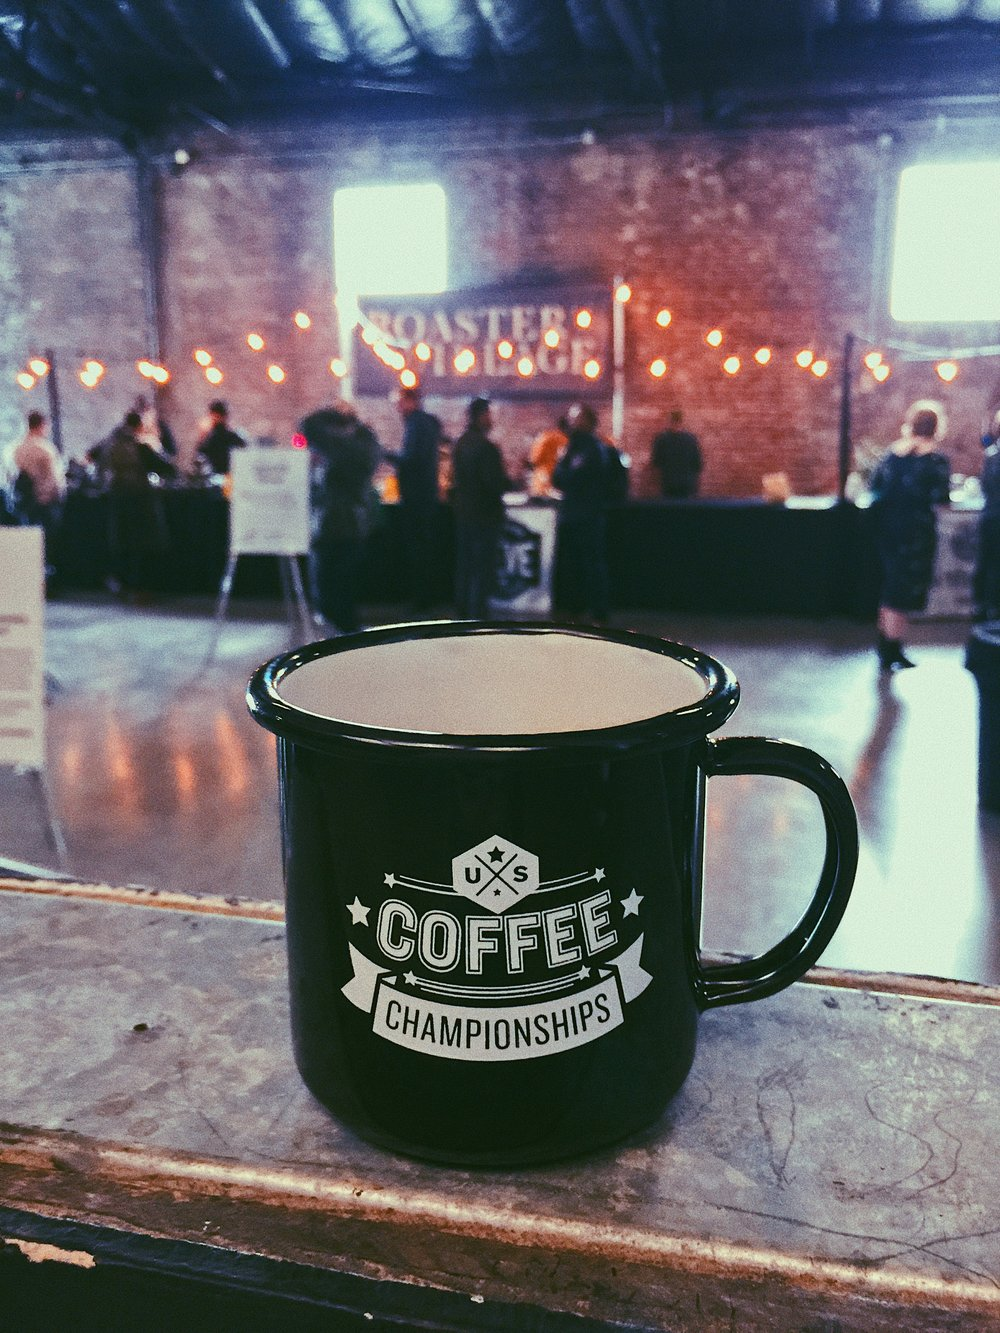 Results announced for us coffee championships qualifying results announced for us coffee championships qualifying competitions held in new orleans us coffee championships malvernweather Choice Image